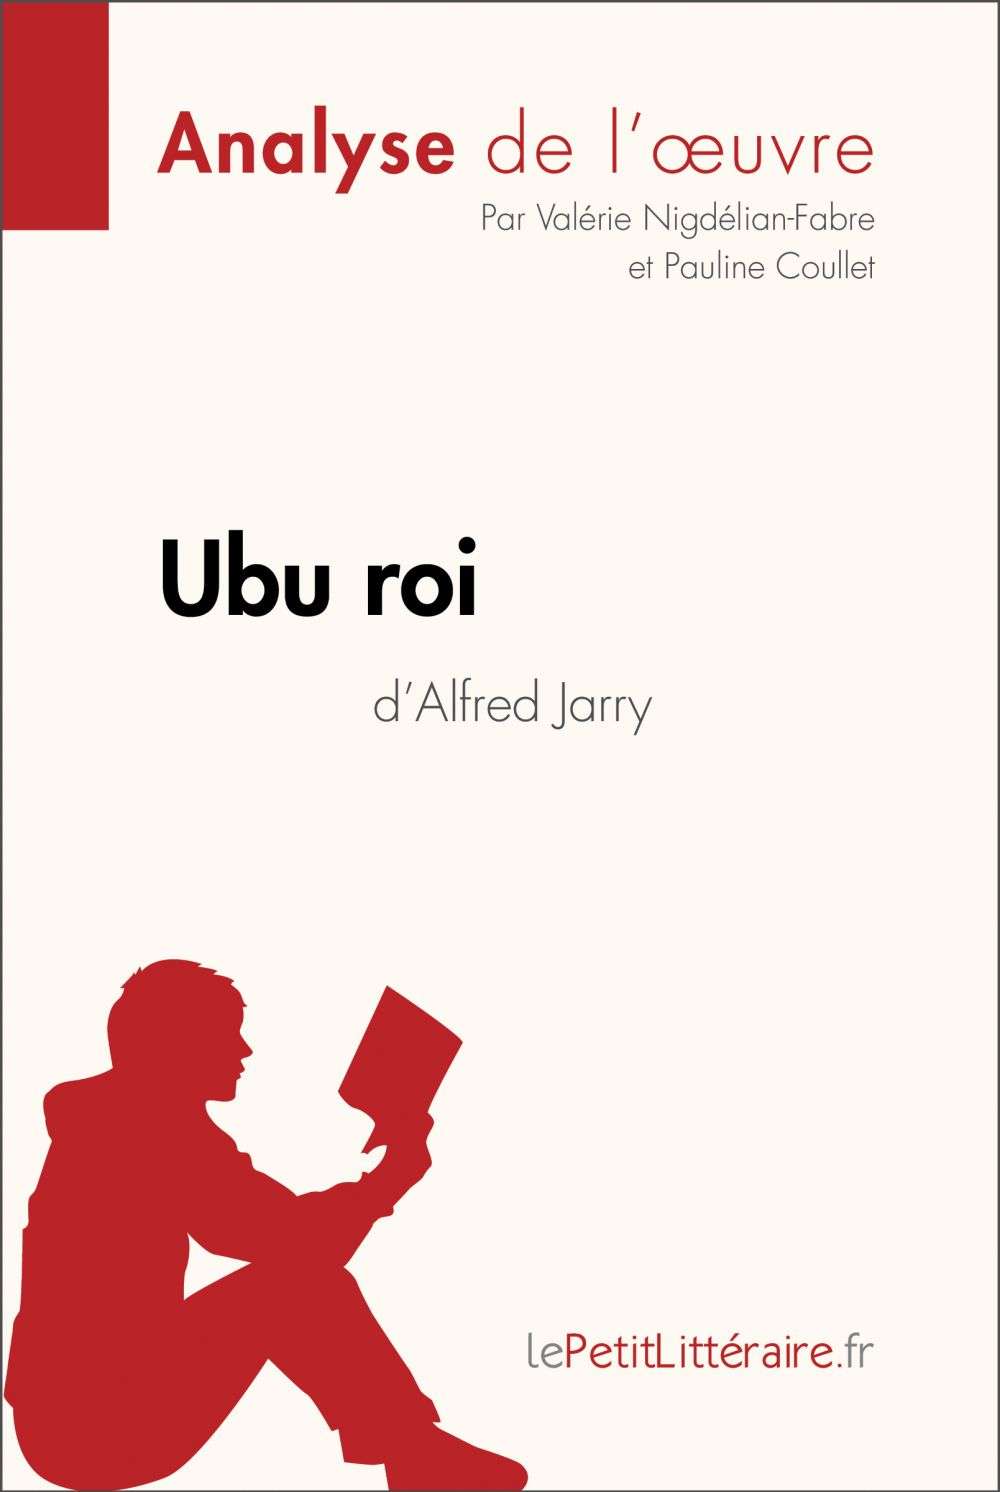 Ubu roi d'Alfred Jarry (Analyse de l'oeuvre)